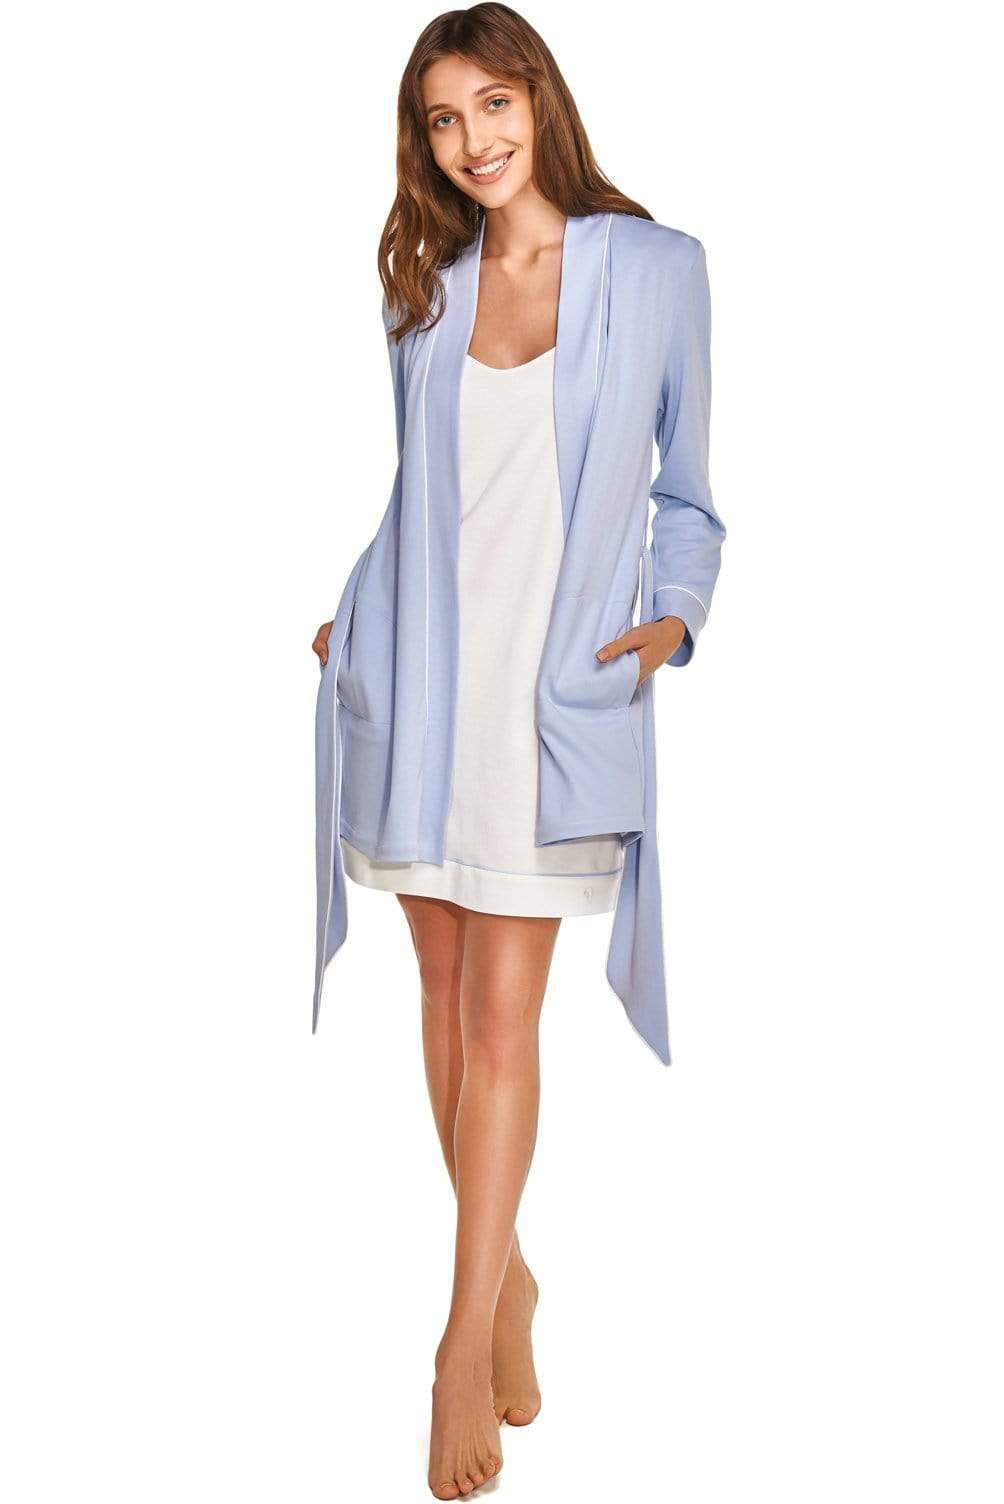 Robe de nuit Slow Nature® Essentials Sleep & Loungewear. Coton organique. mode durable mode éthique